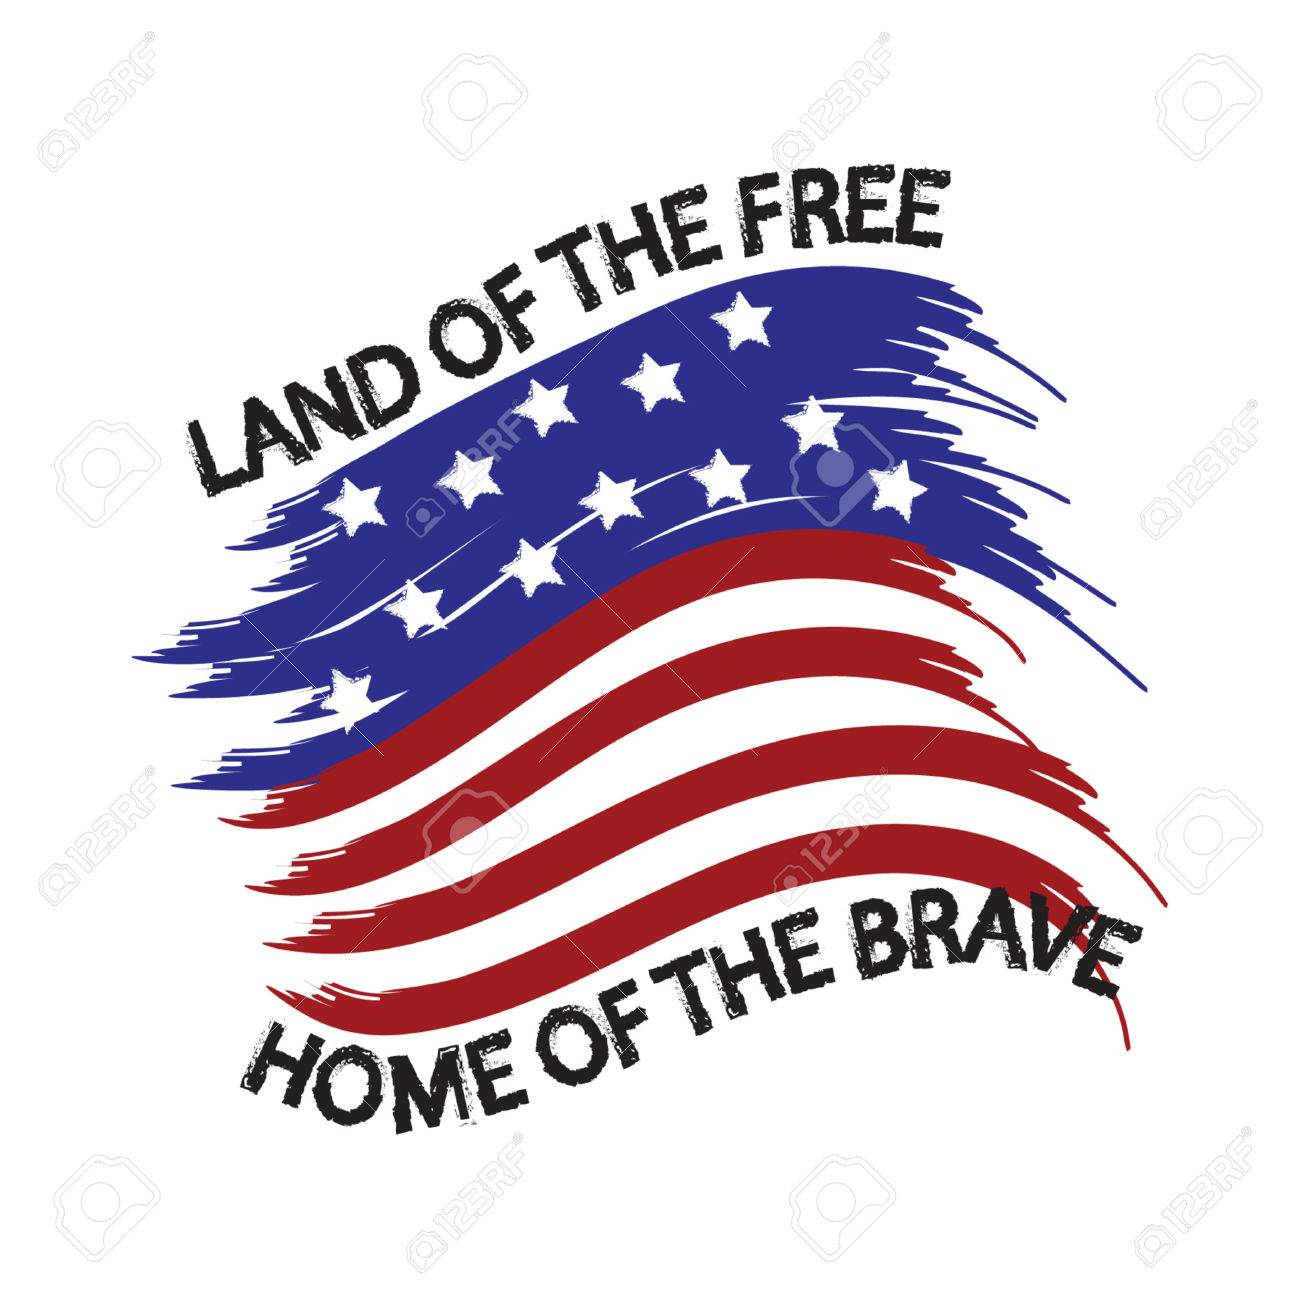 United States of America Land of the Free Home of the Brave.